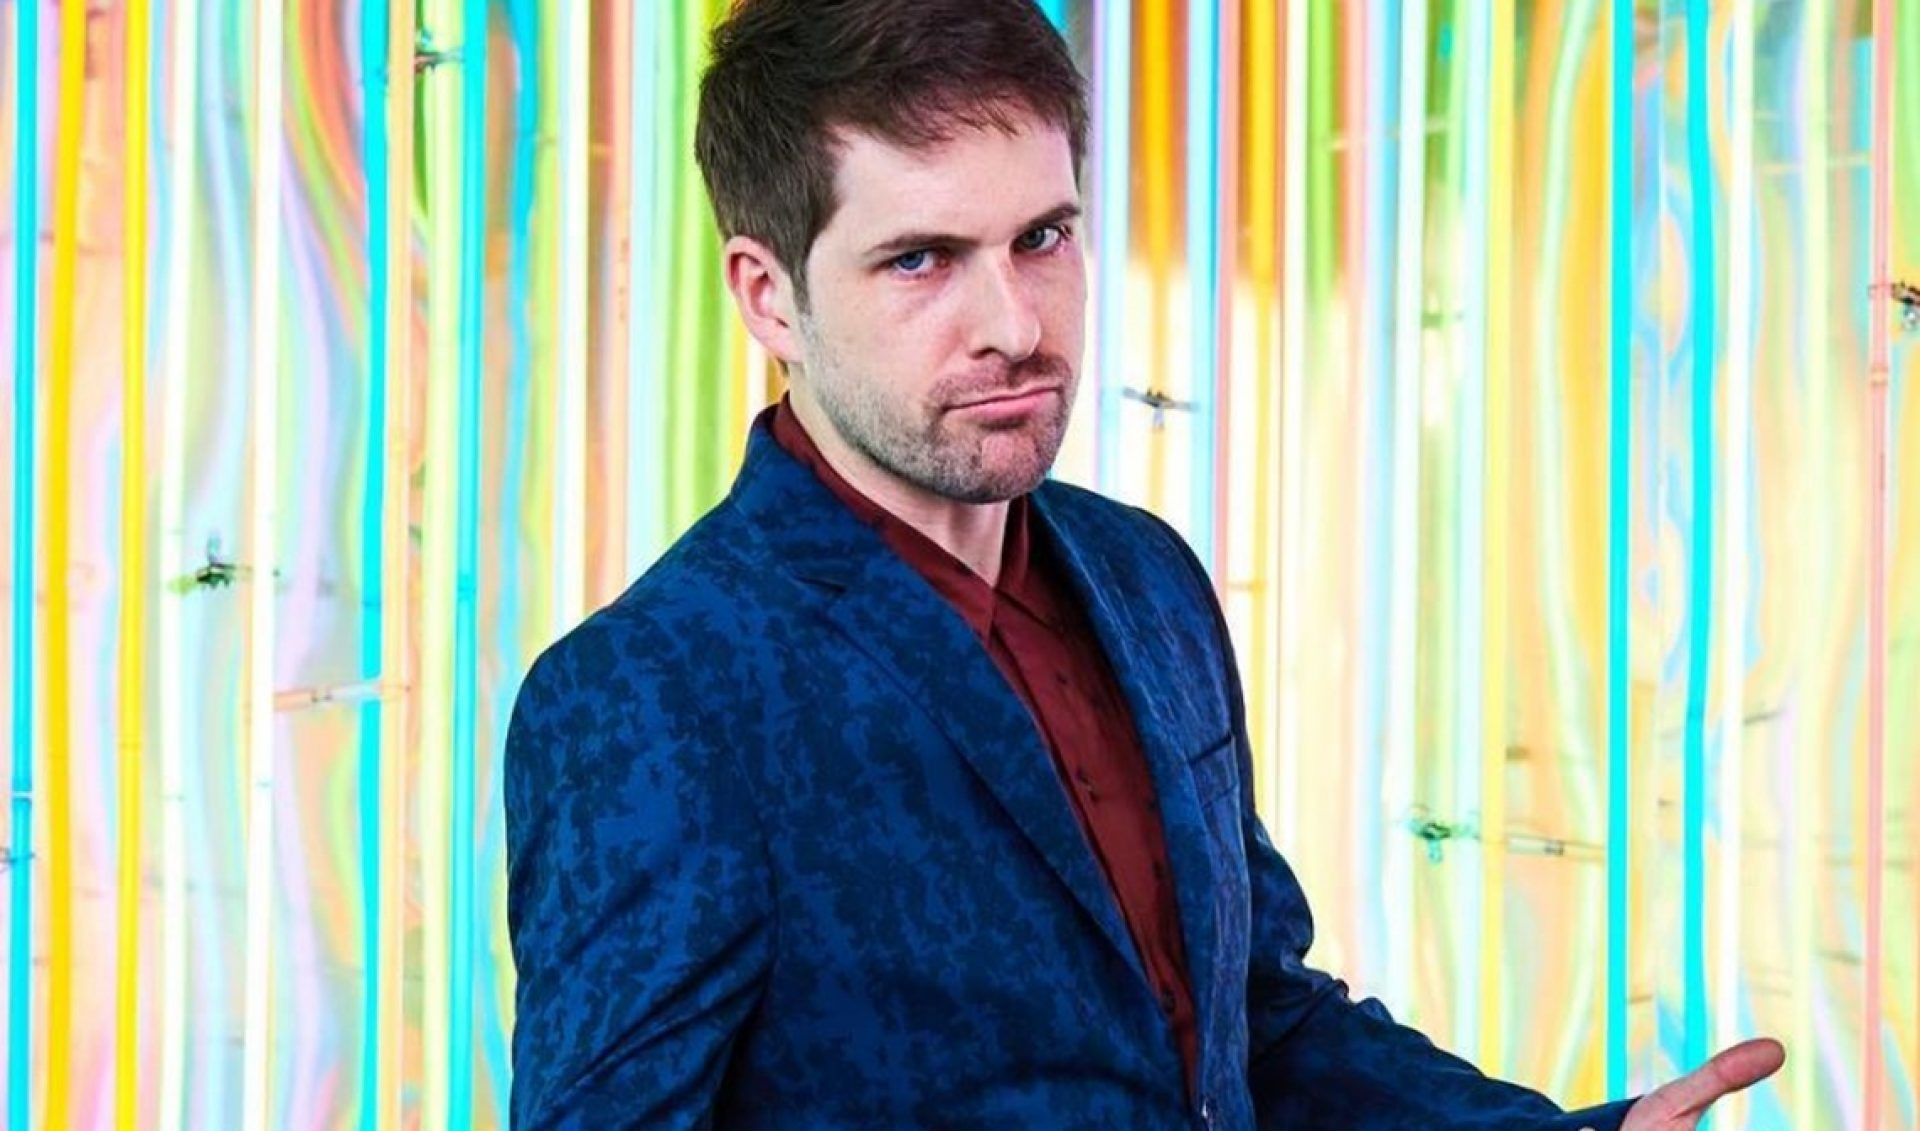 Crackle Greenlights Series Starring Smosh's Ian Hecox, Dramas From 50 Cent